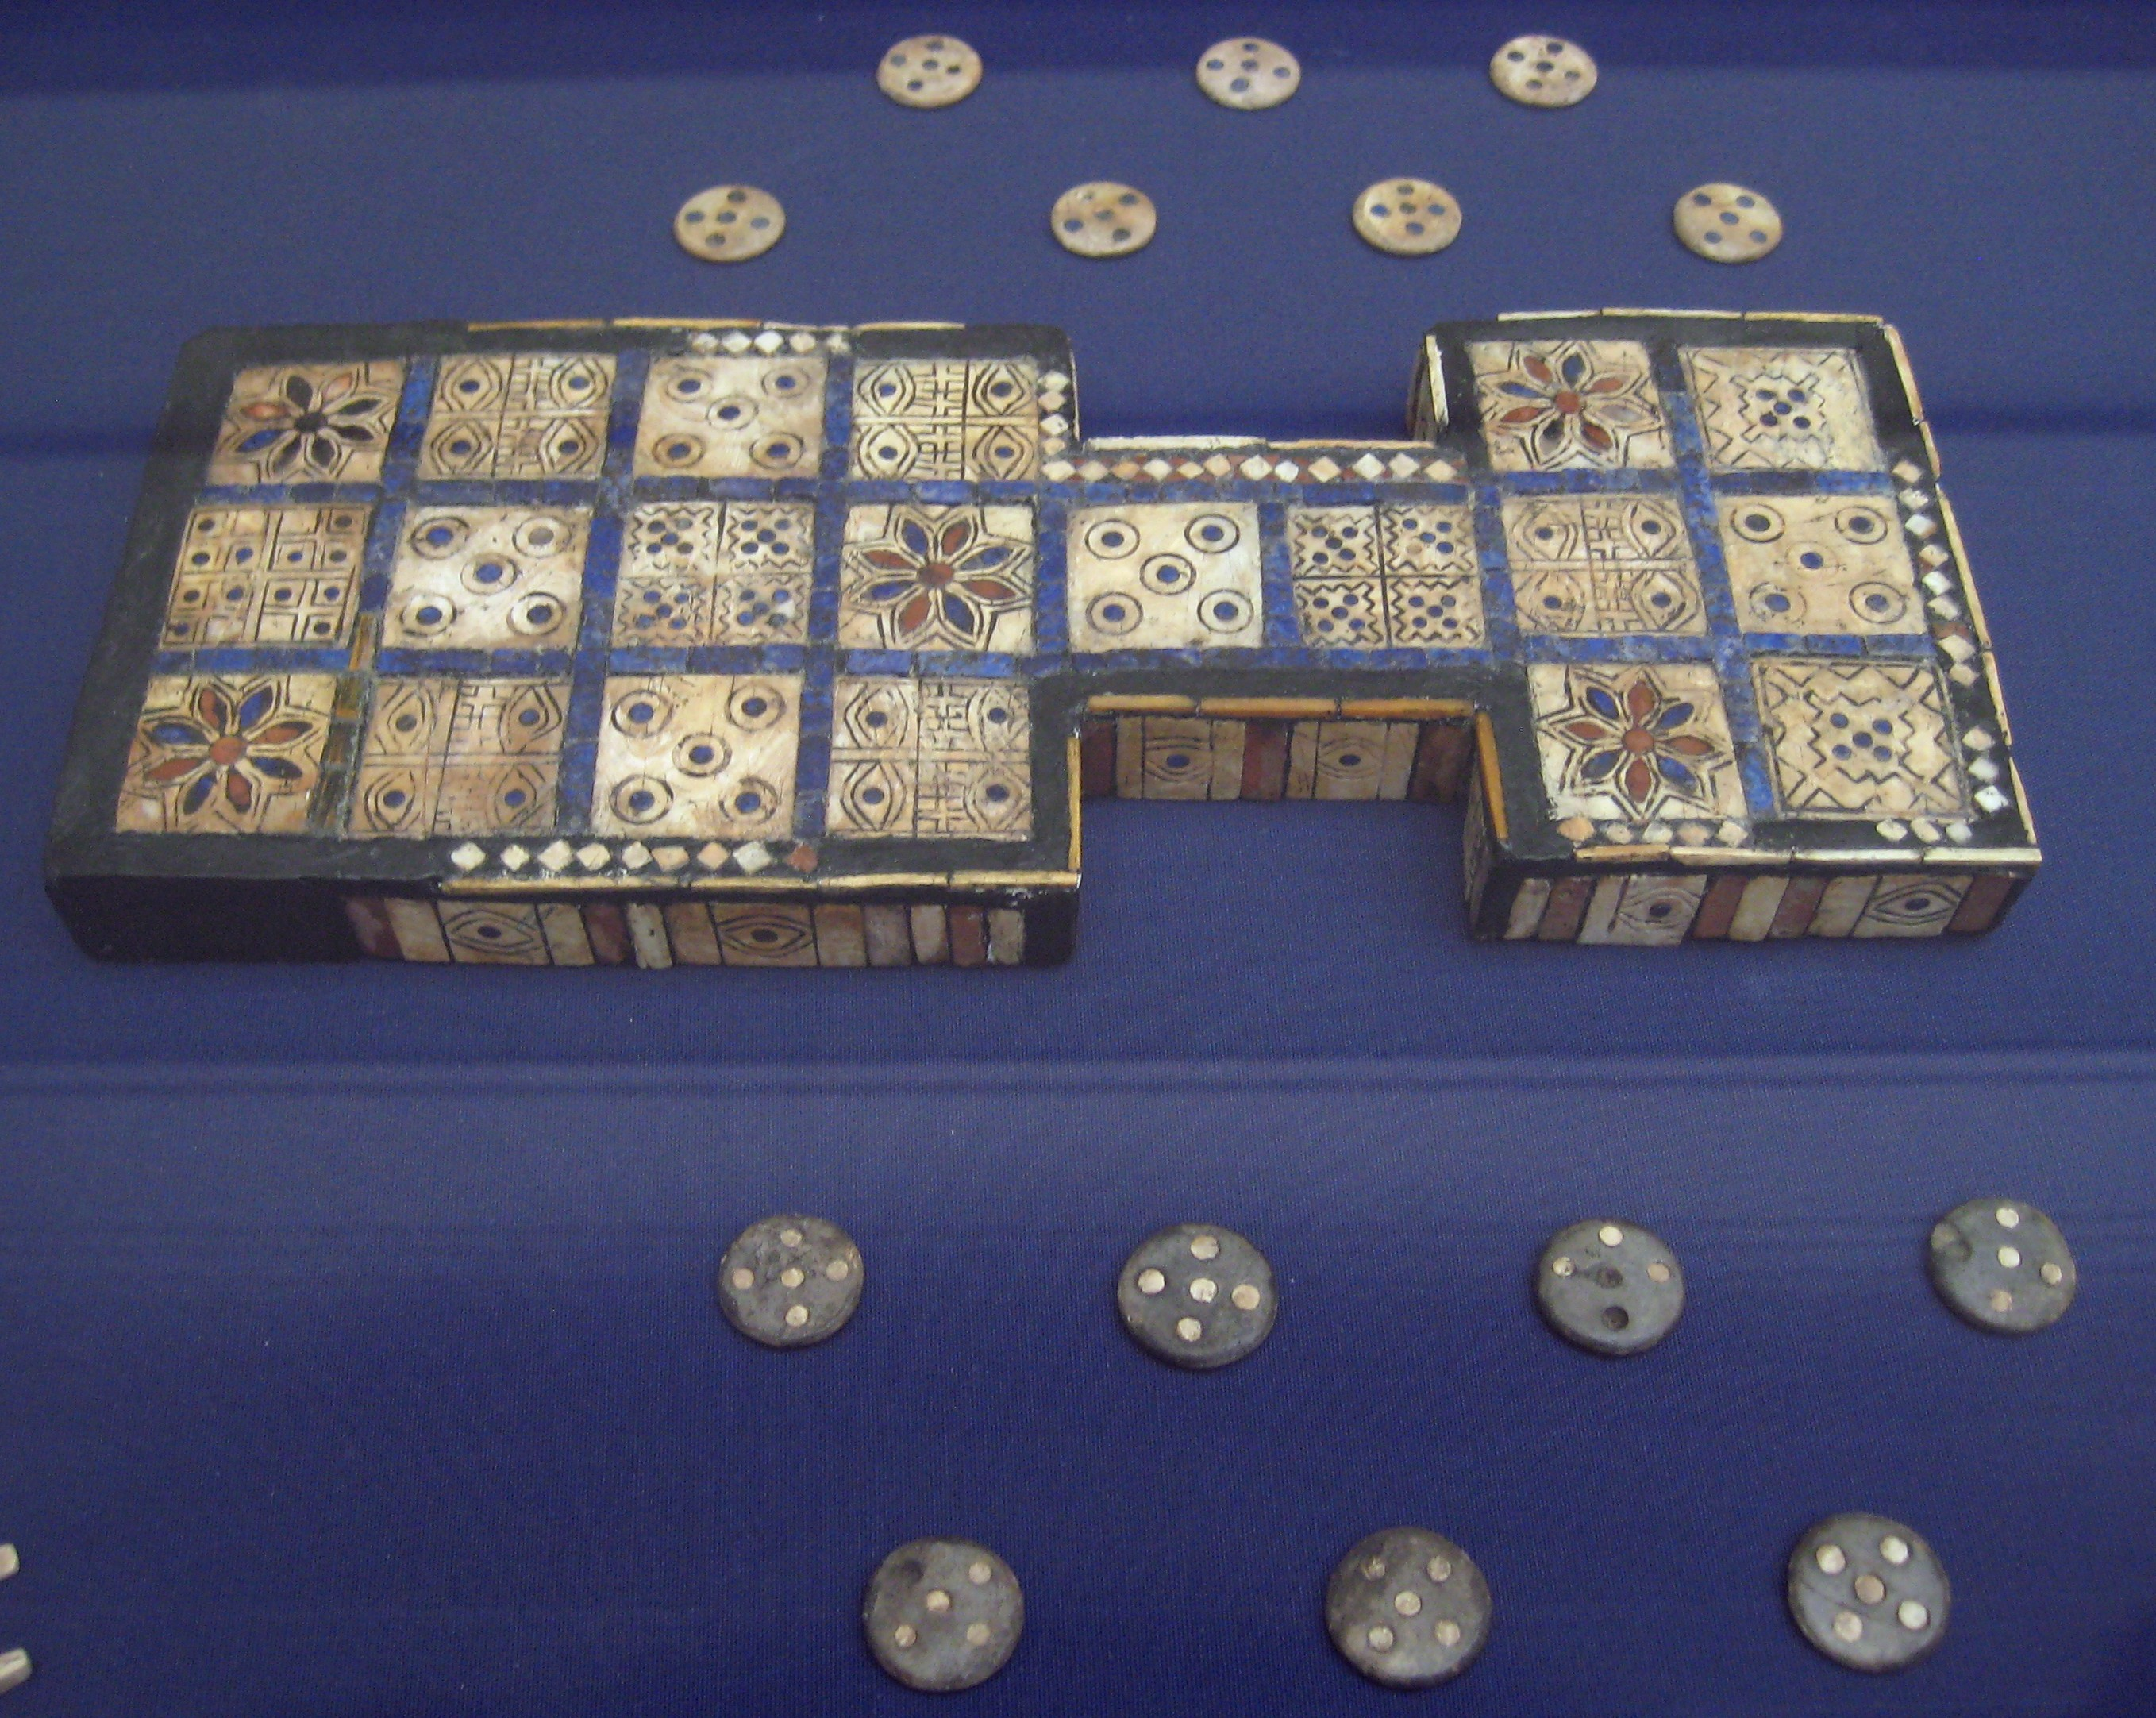 http://upload.wikimedia.org/wikipedia/commons/1/1d/British_Museum_Royal_Game_of_Ur.jpg